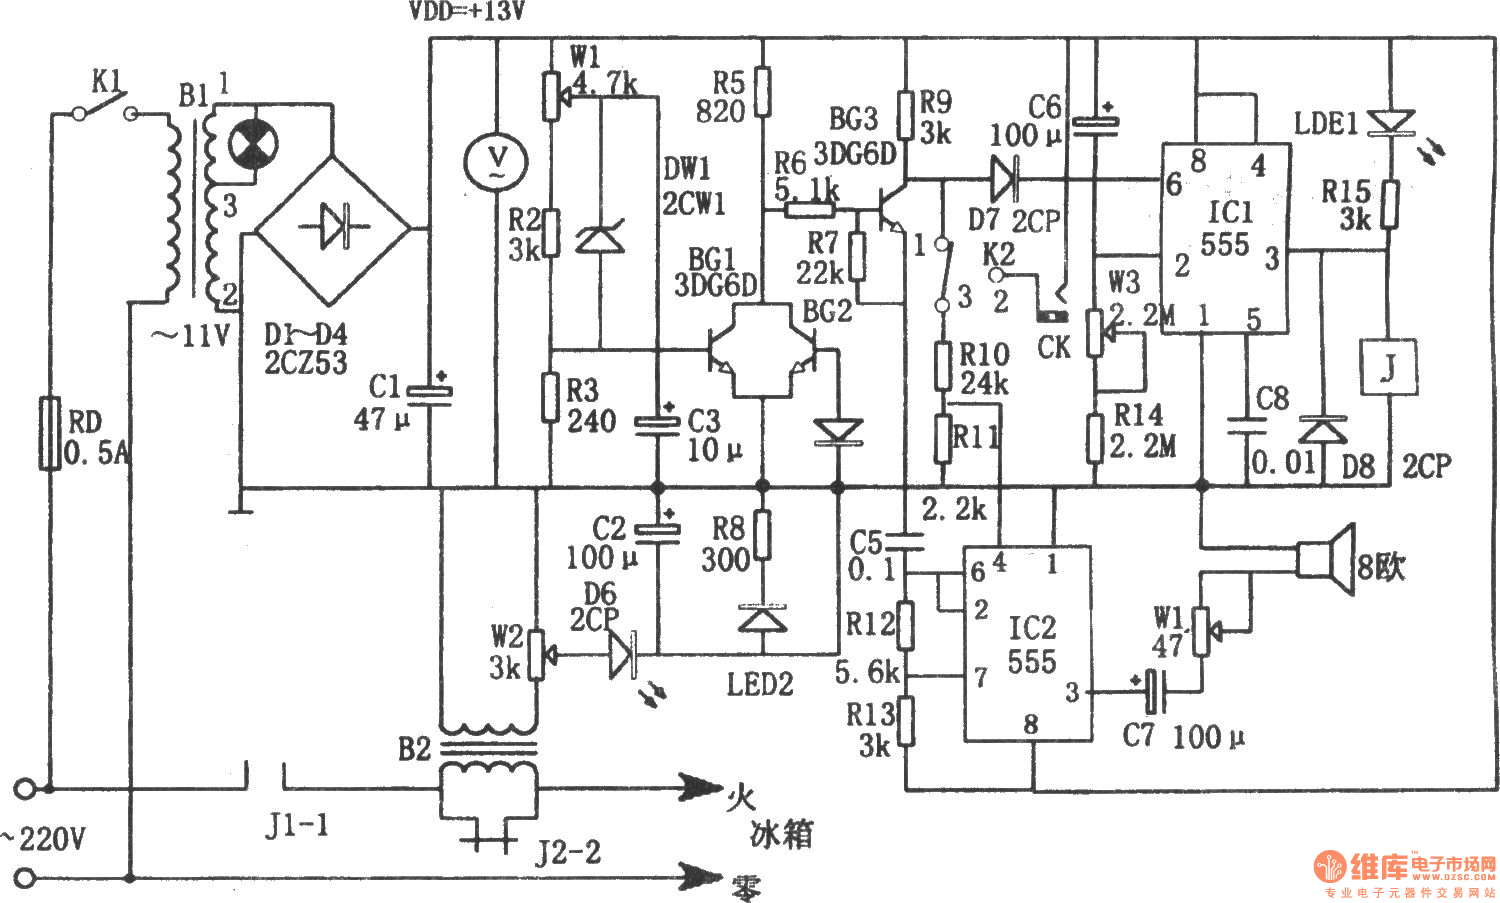 multi-function refrigerator controller composed of 555 - 555 circuit - circuit diagram